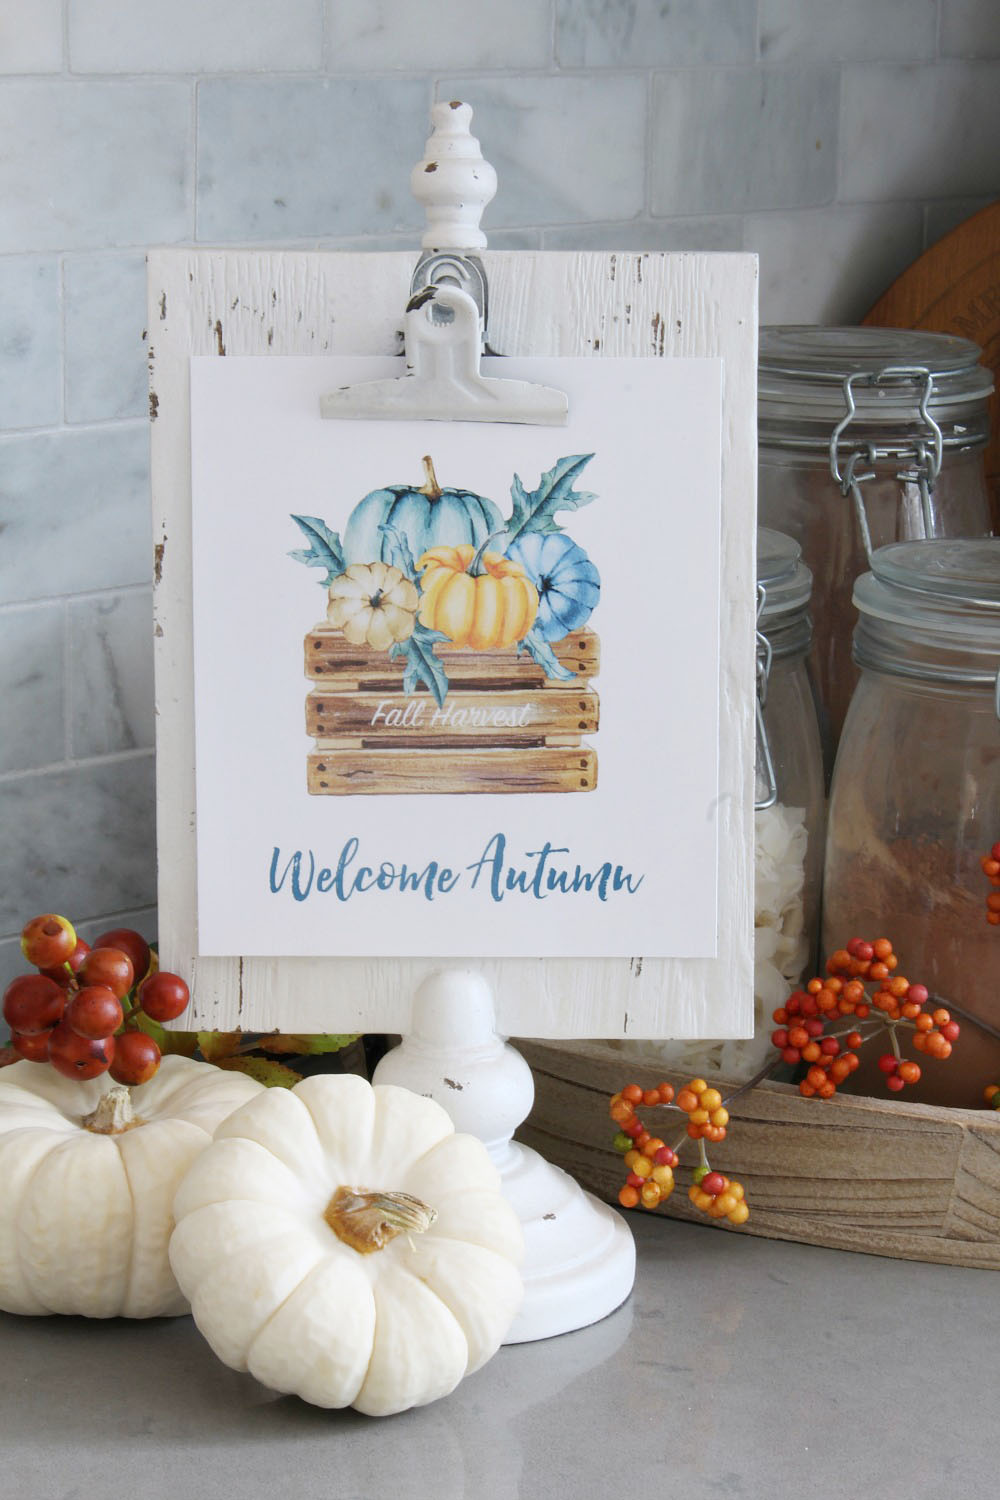 Cute fall printable and fall home decor ideas.